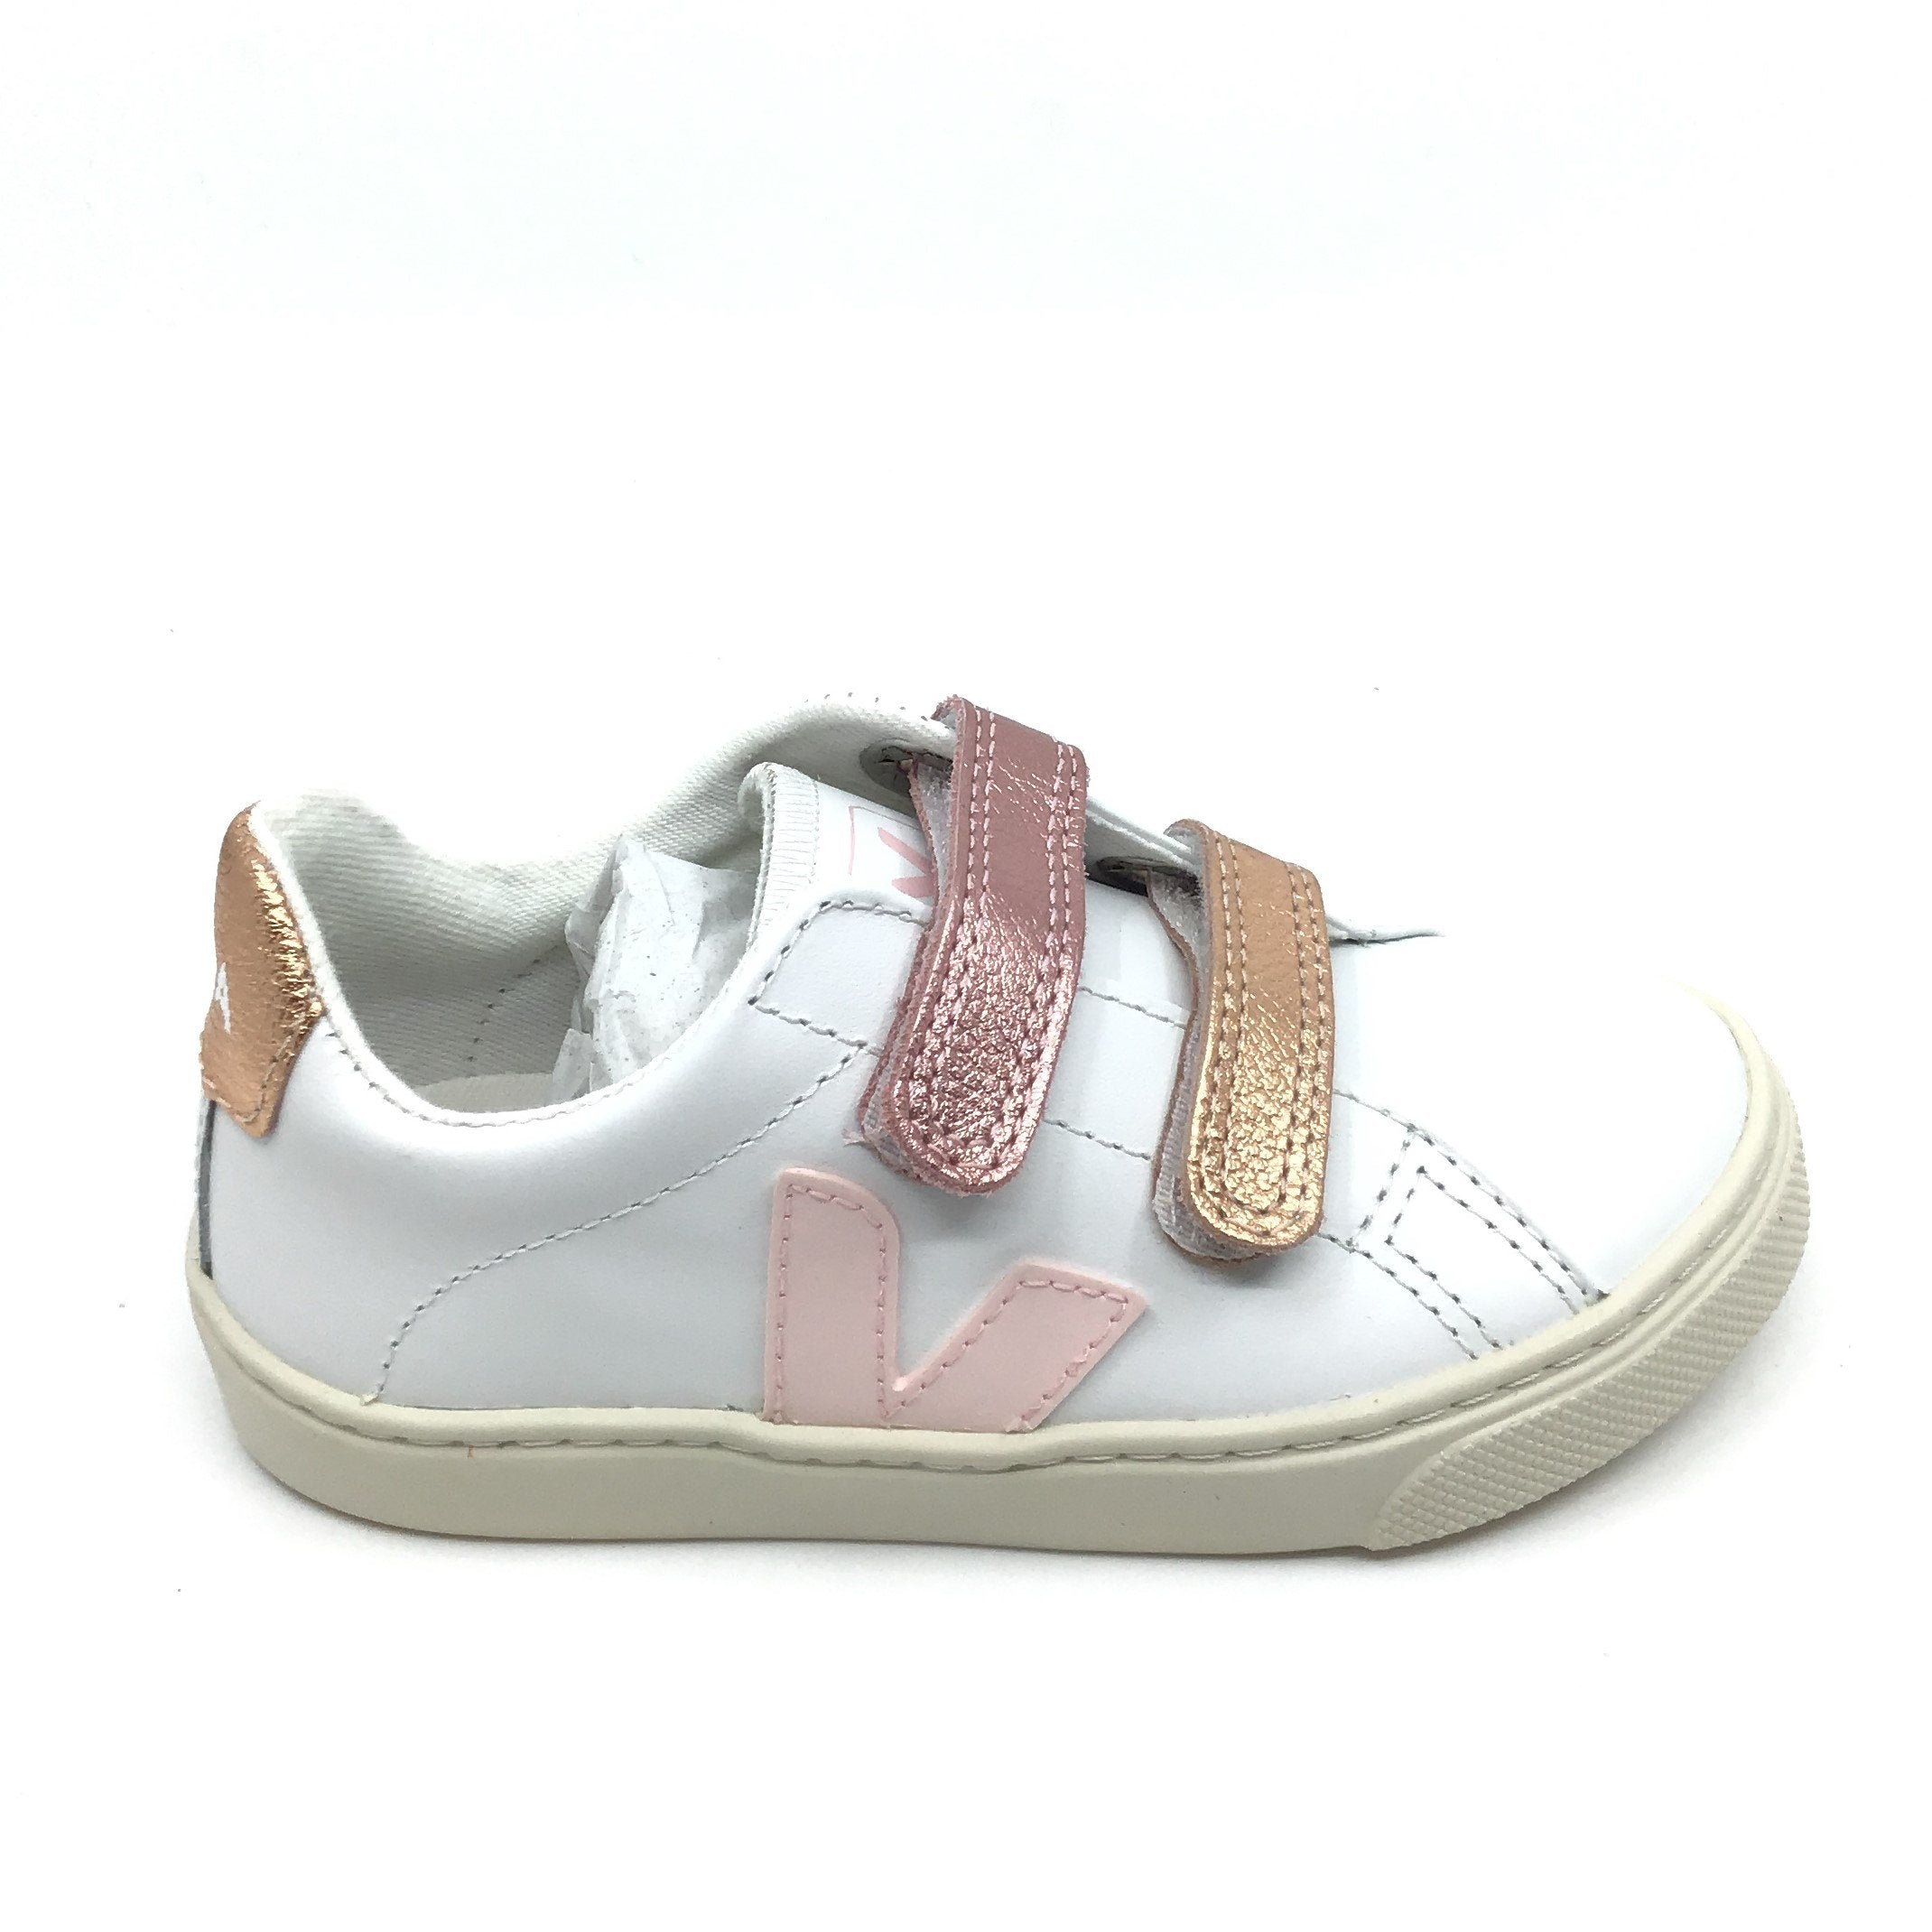 Veja White Sneaker with Gold Velcro